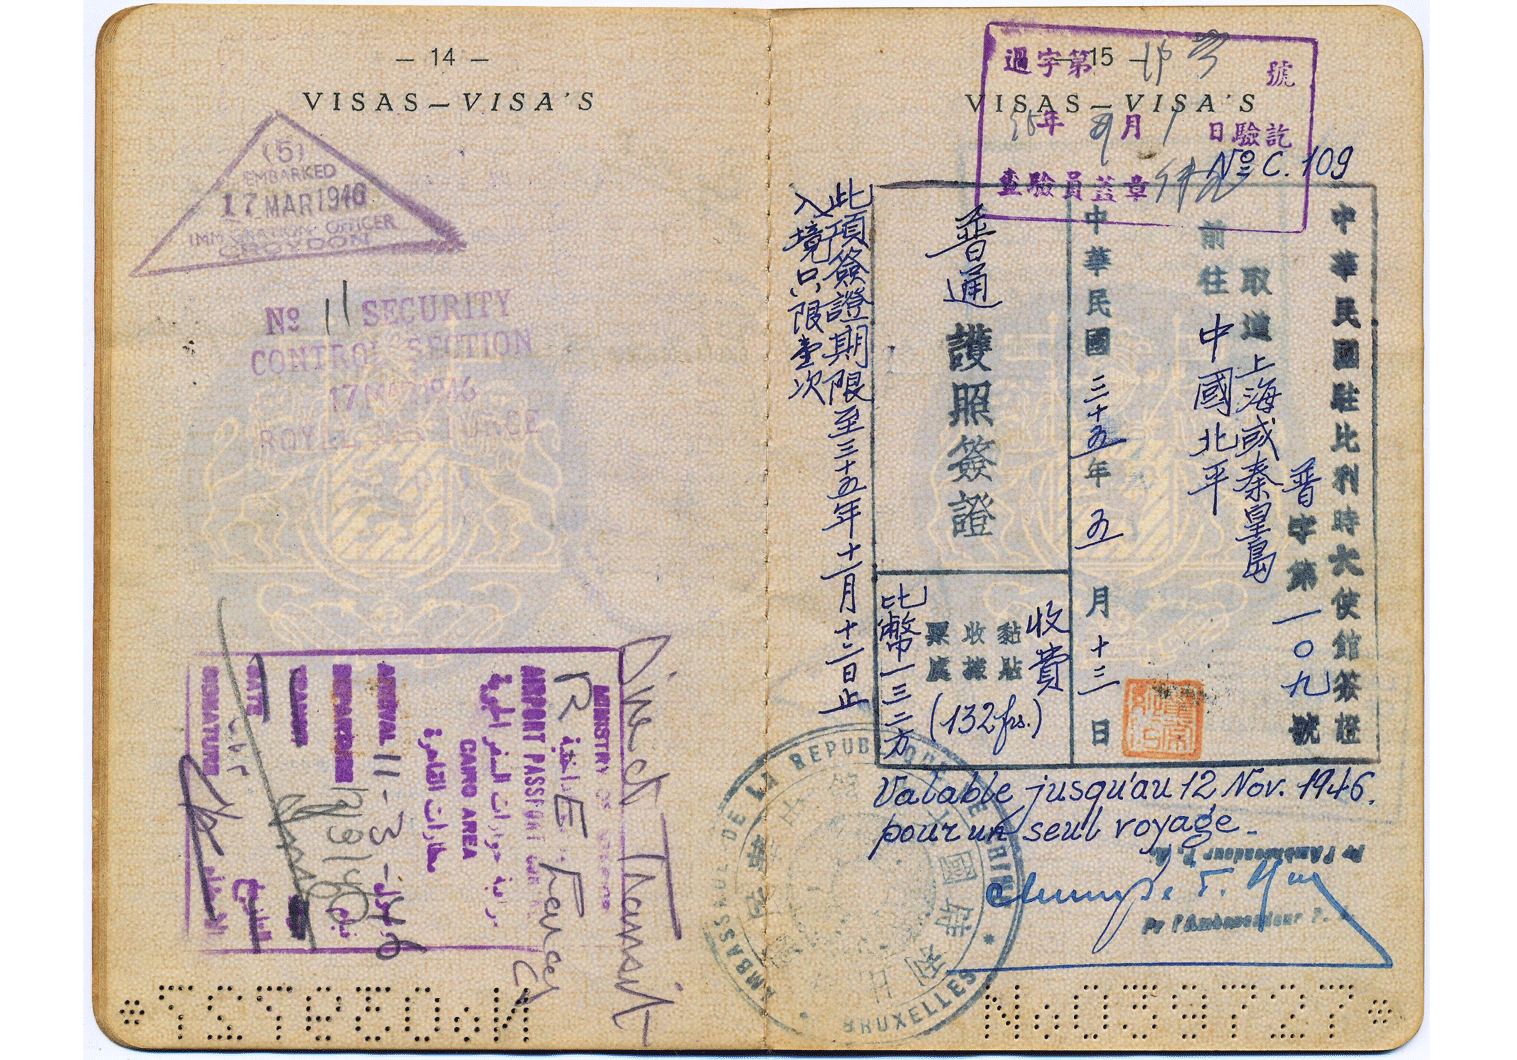 1946 China issued passport